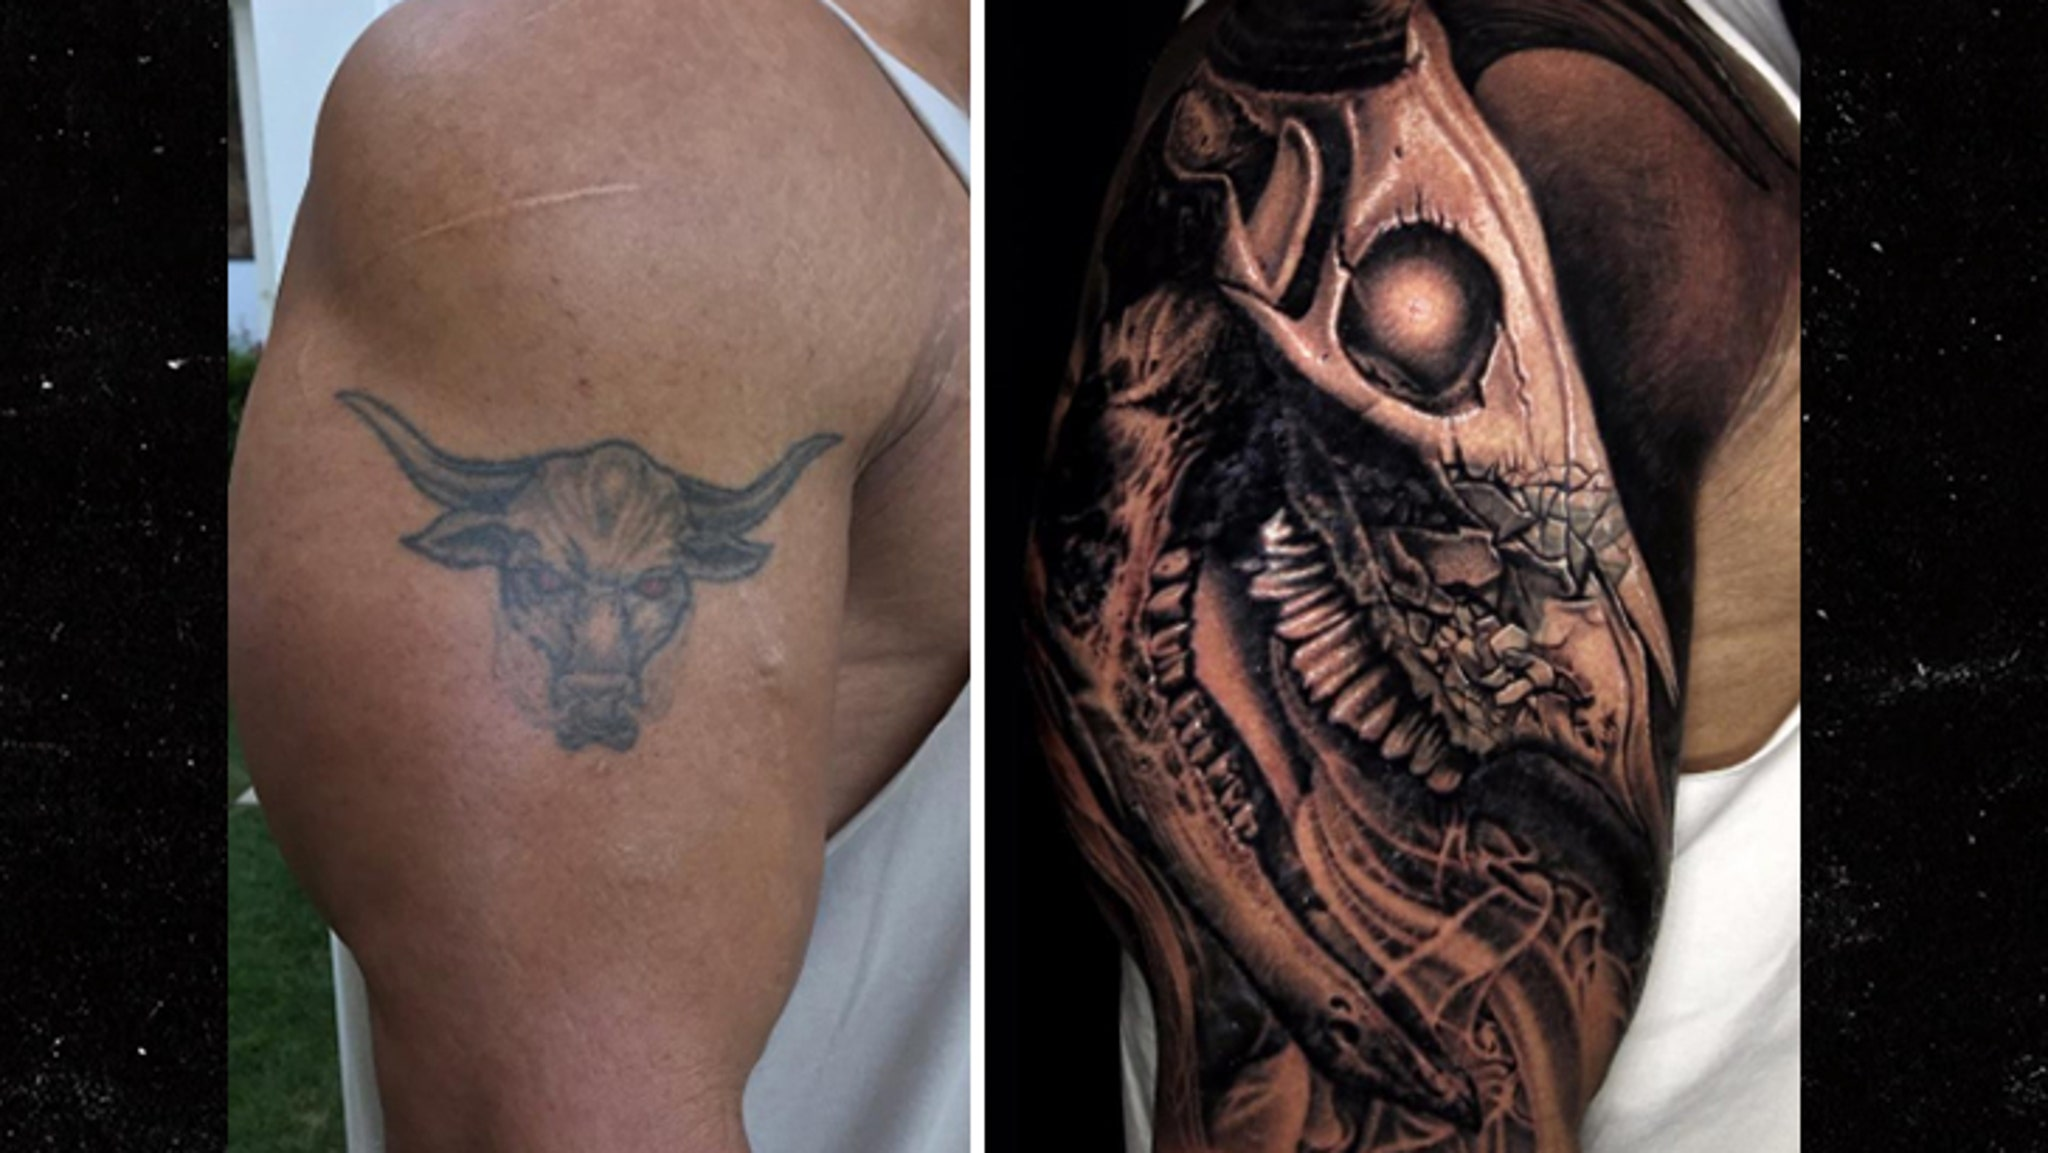 The Rock Covers Up Iconic Bull Tattoo With Bigger Bull Tattoo